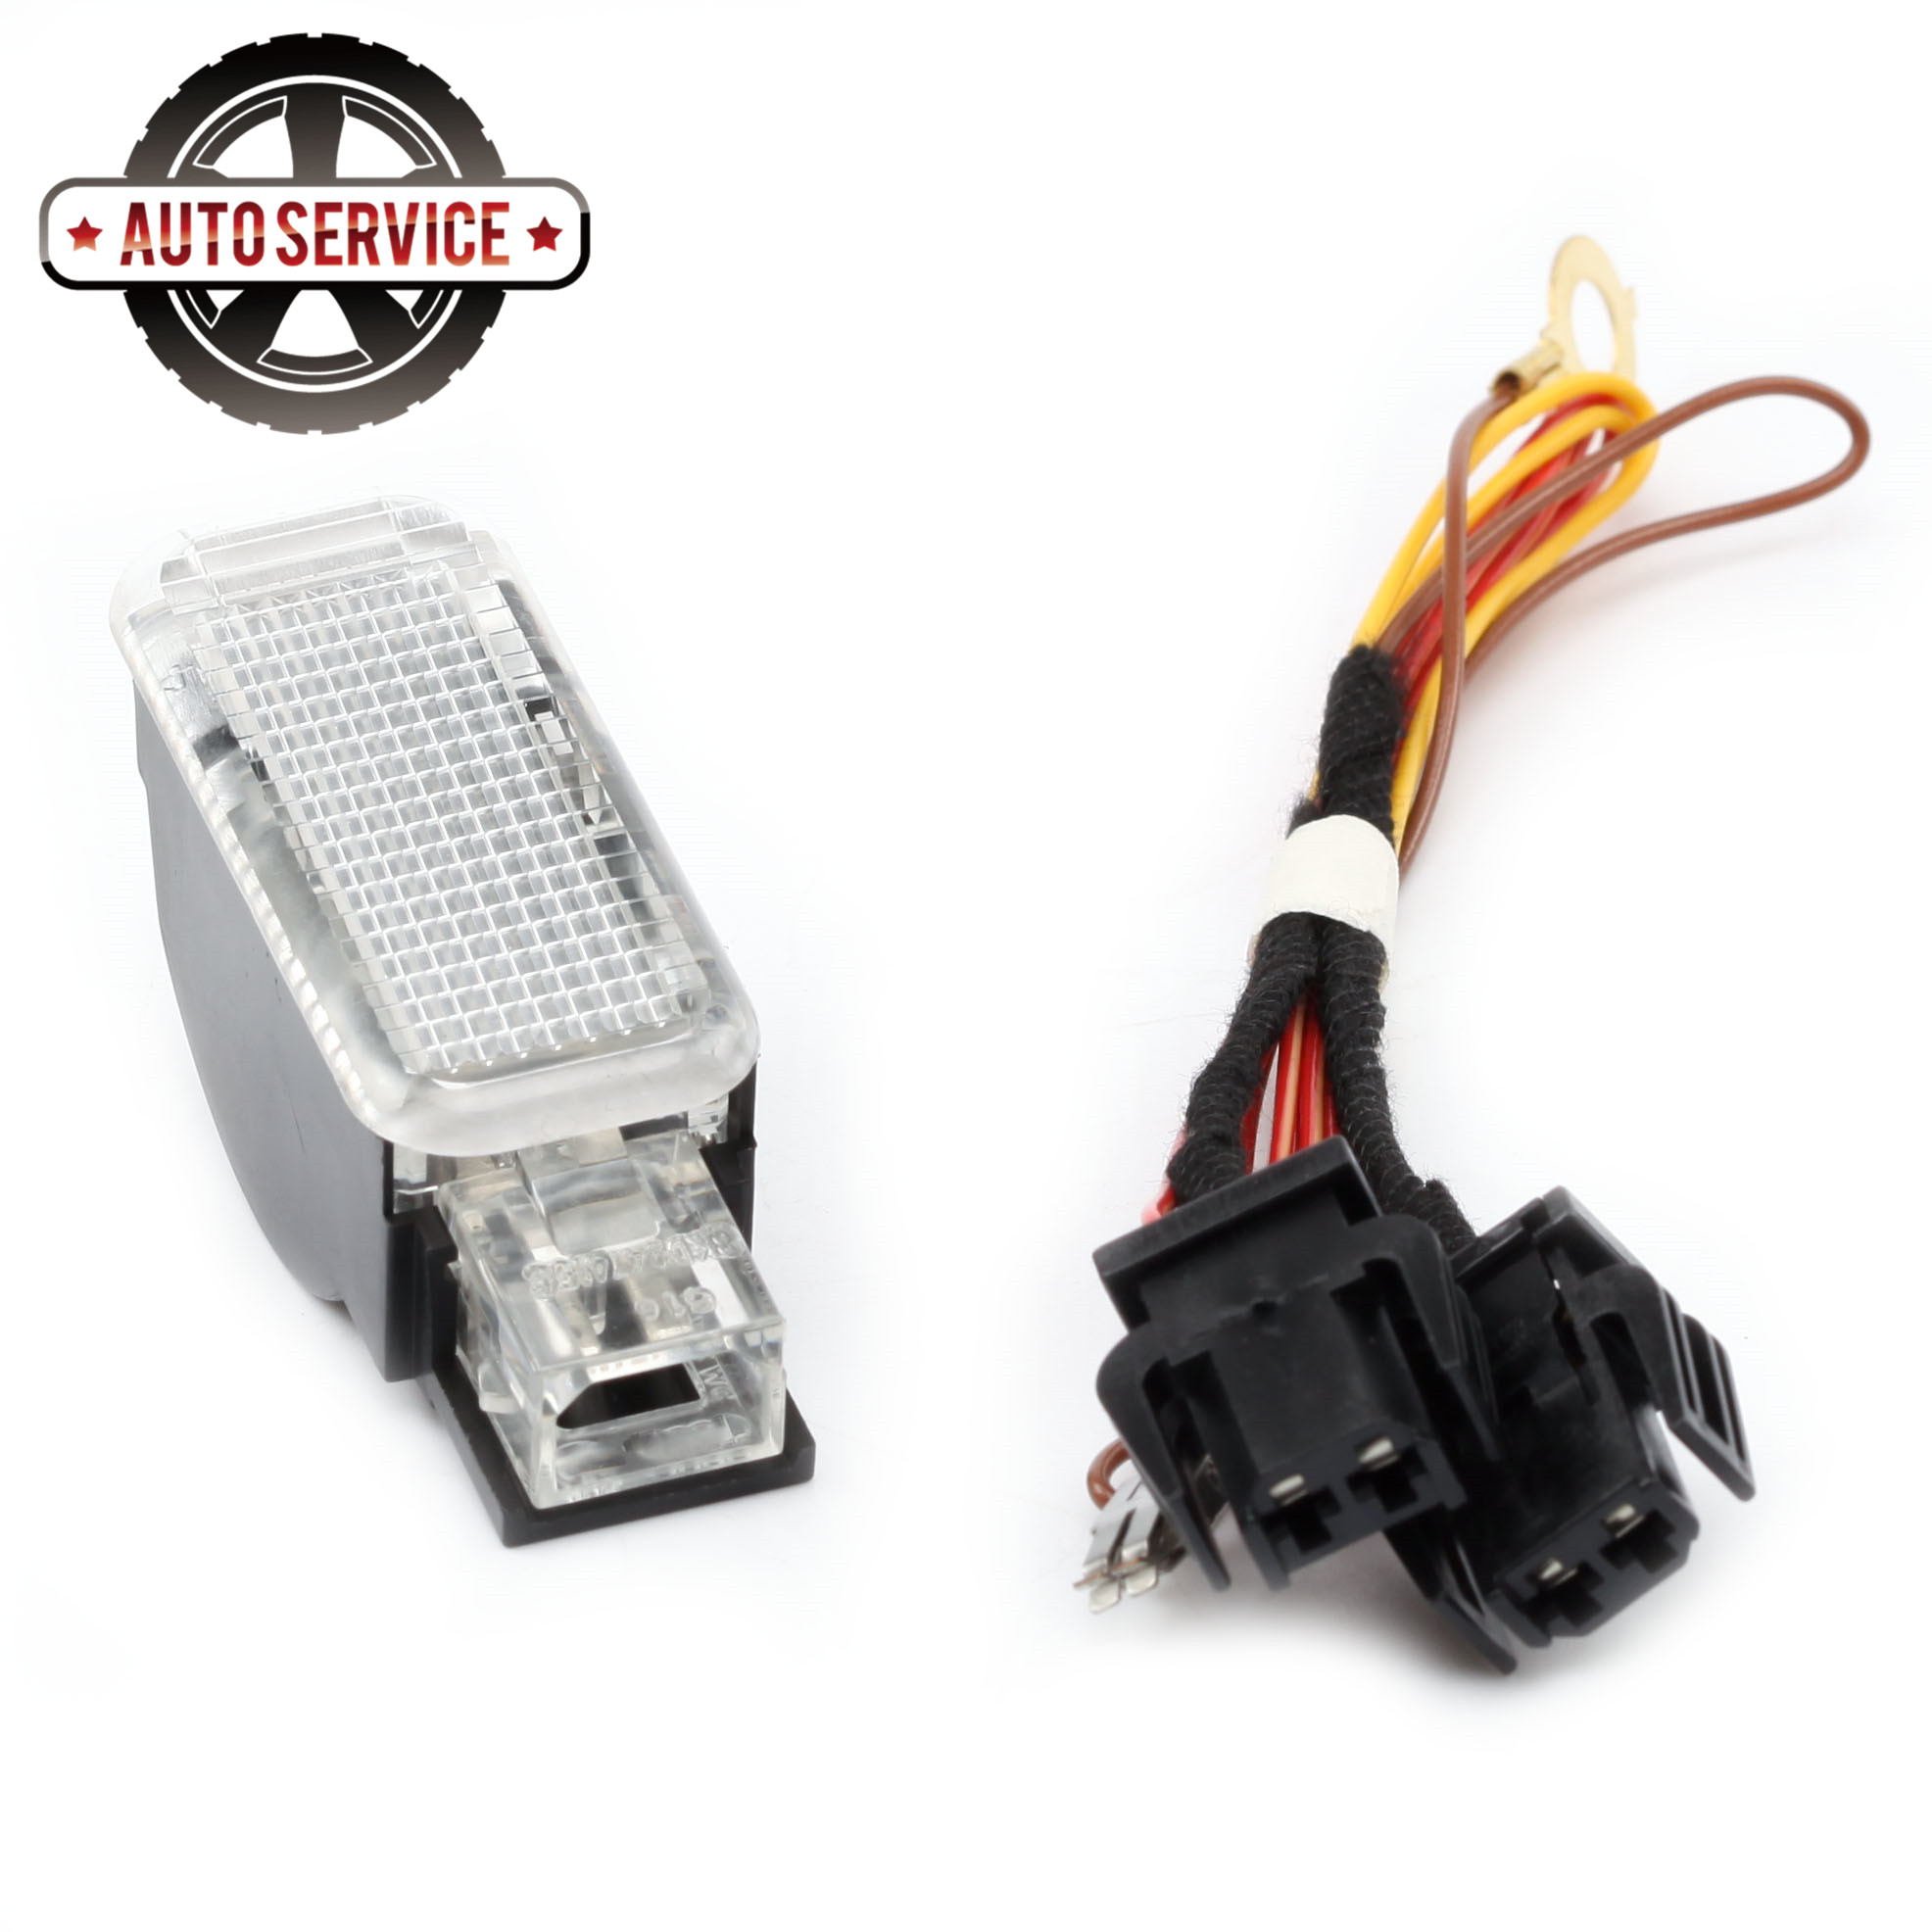 New 8KD 947 415 C Glove <font><b>Box</b></font> <font><b>Lights</b></font> Harness LED Kit For VW Phaeton Sharan Skoda Seat Audi A1 <font><b>A2</b></font> A3 A4 A5 A6 Q3 Q5 Q7 TT 8D0947415 image